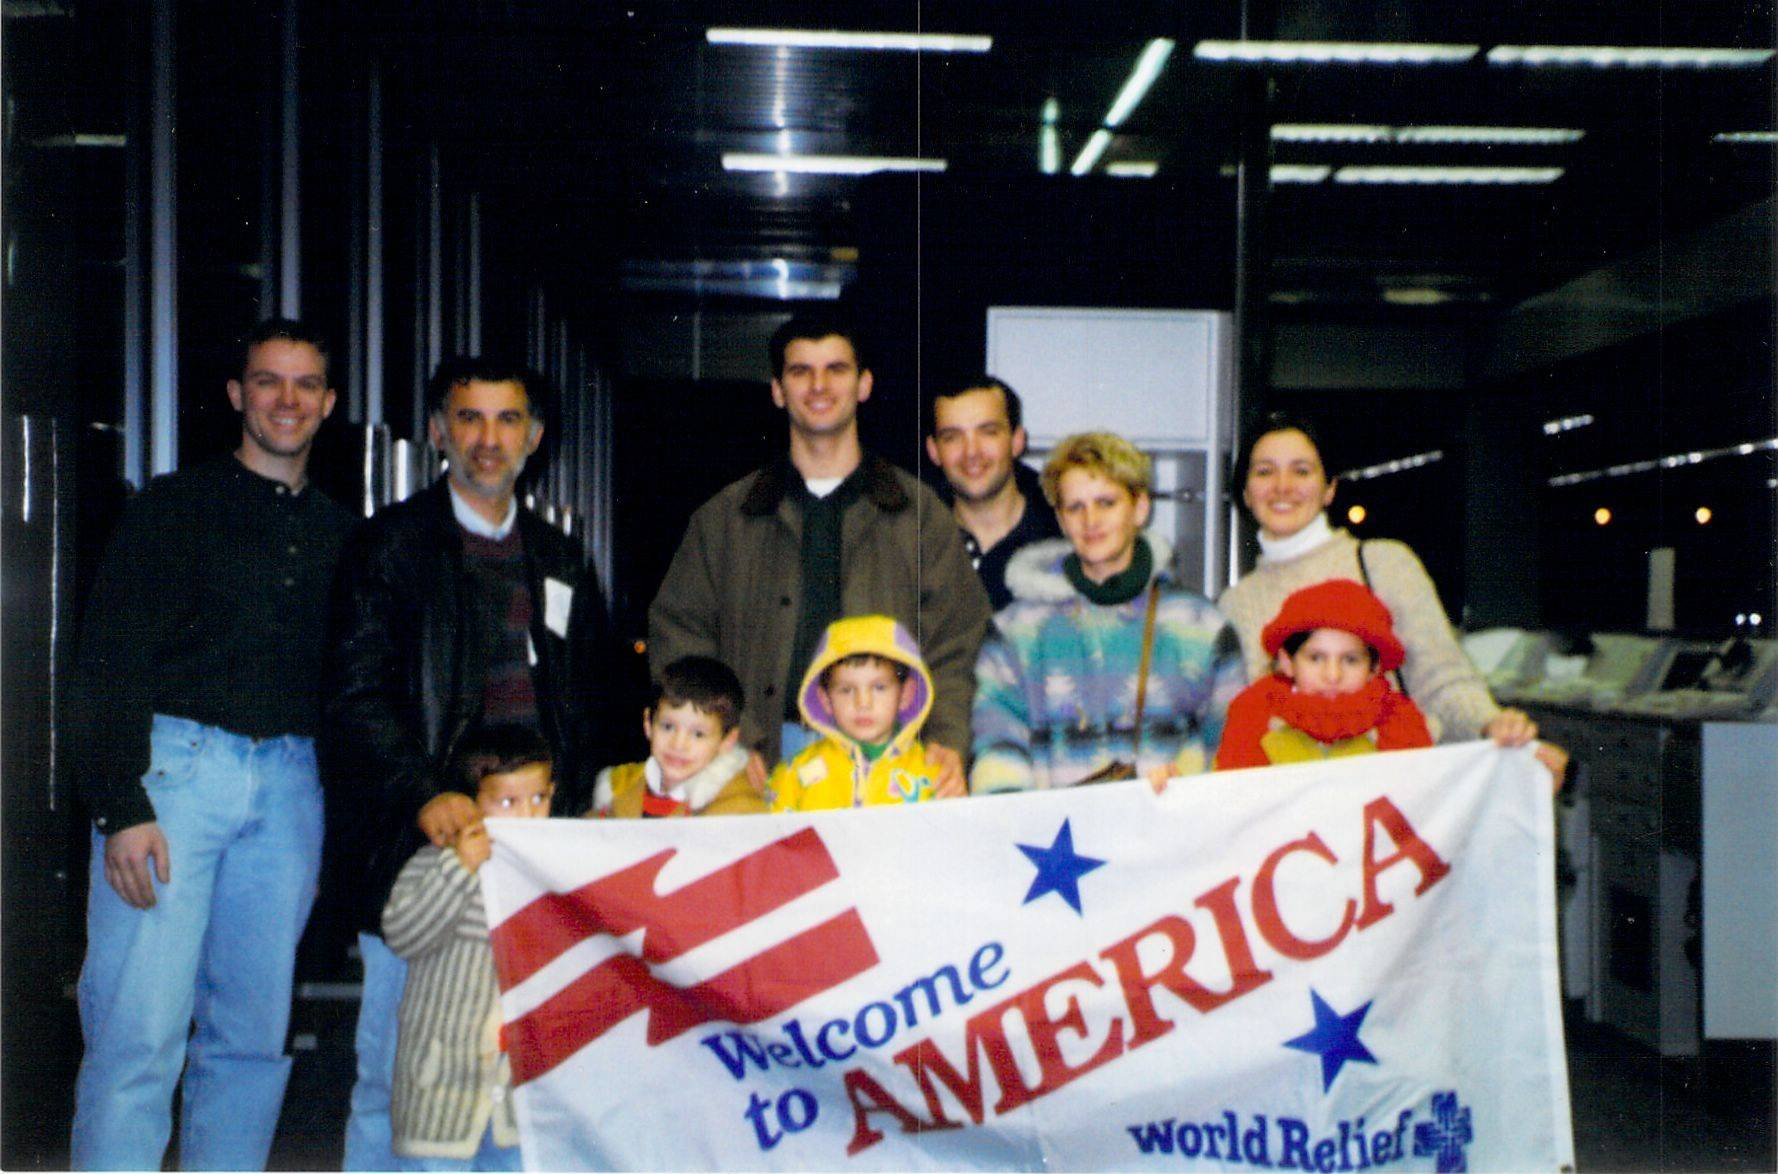 Hasan Fetahi's family, fleeing Kosovo, arrives in the U.S. in 2000 to live with the Aurand family, Virgil, far left, and Jody, far right, of Elgin. Hasan, who came with his parents, brothers and sister, is the second child from the left in the front row.